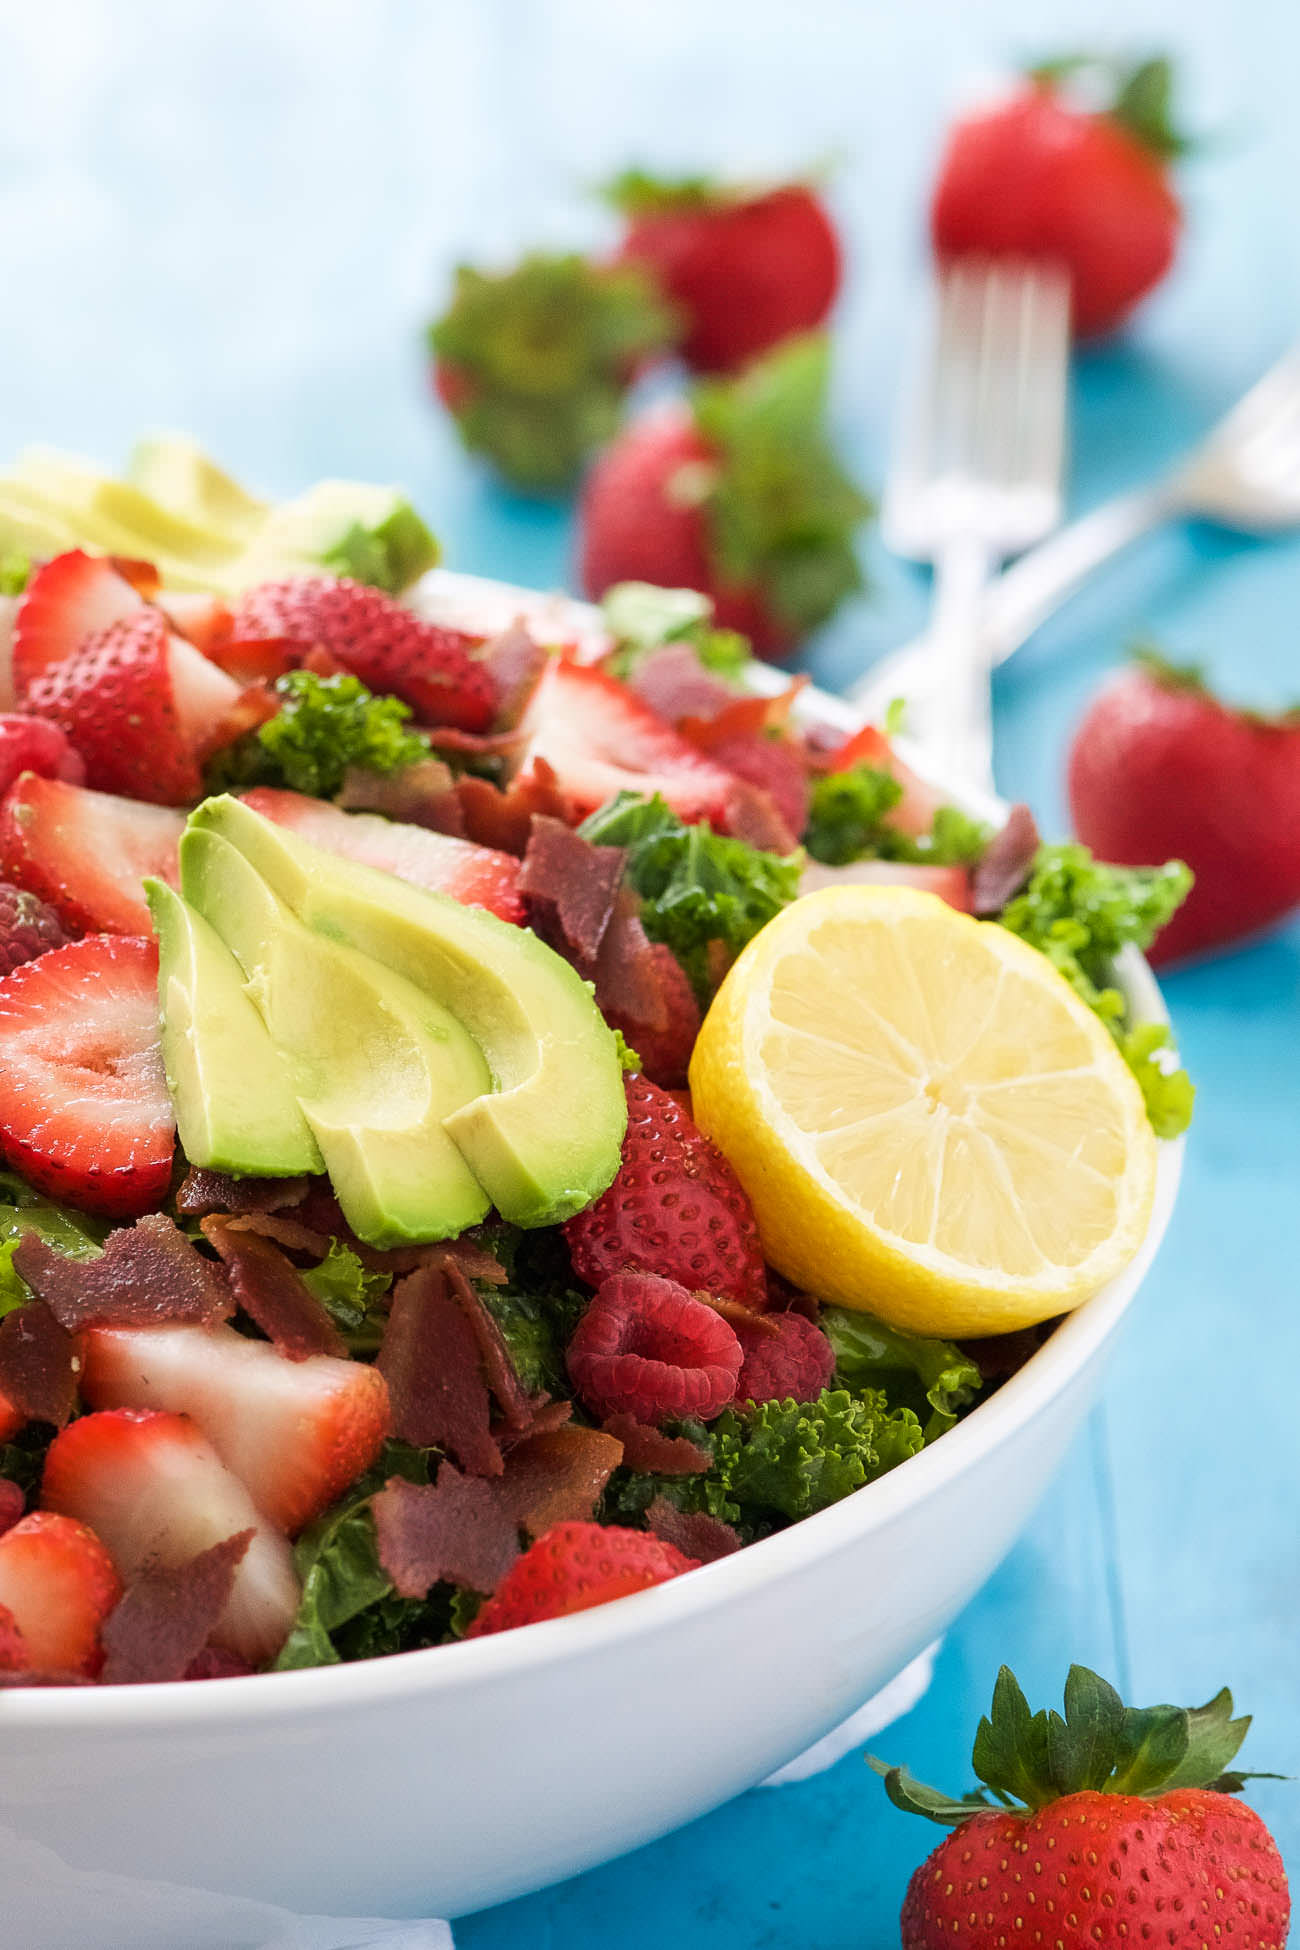 This Bacon & Berry Kale Salad with Honey Lemon Vinaigrette is a summertime superfood salad! Fresh kale tossed in a honey lemon vinaigrette and topped with fresh berries, creamy avocado, and crispy bacon!